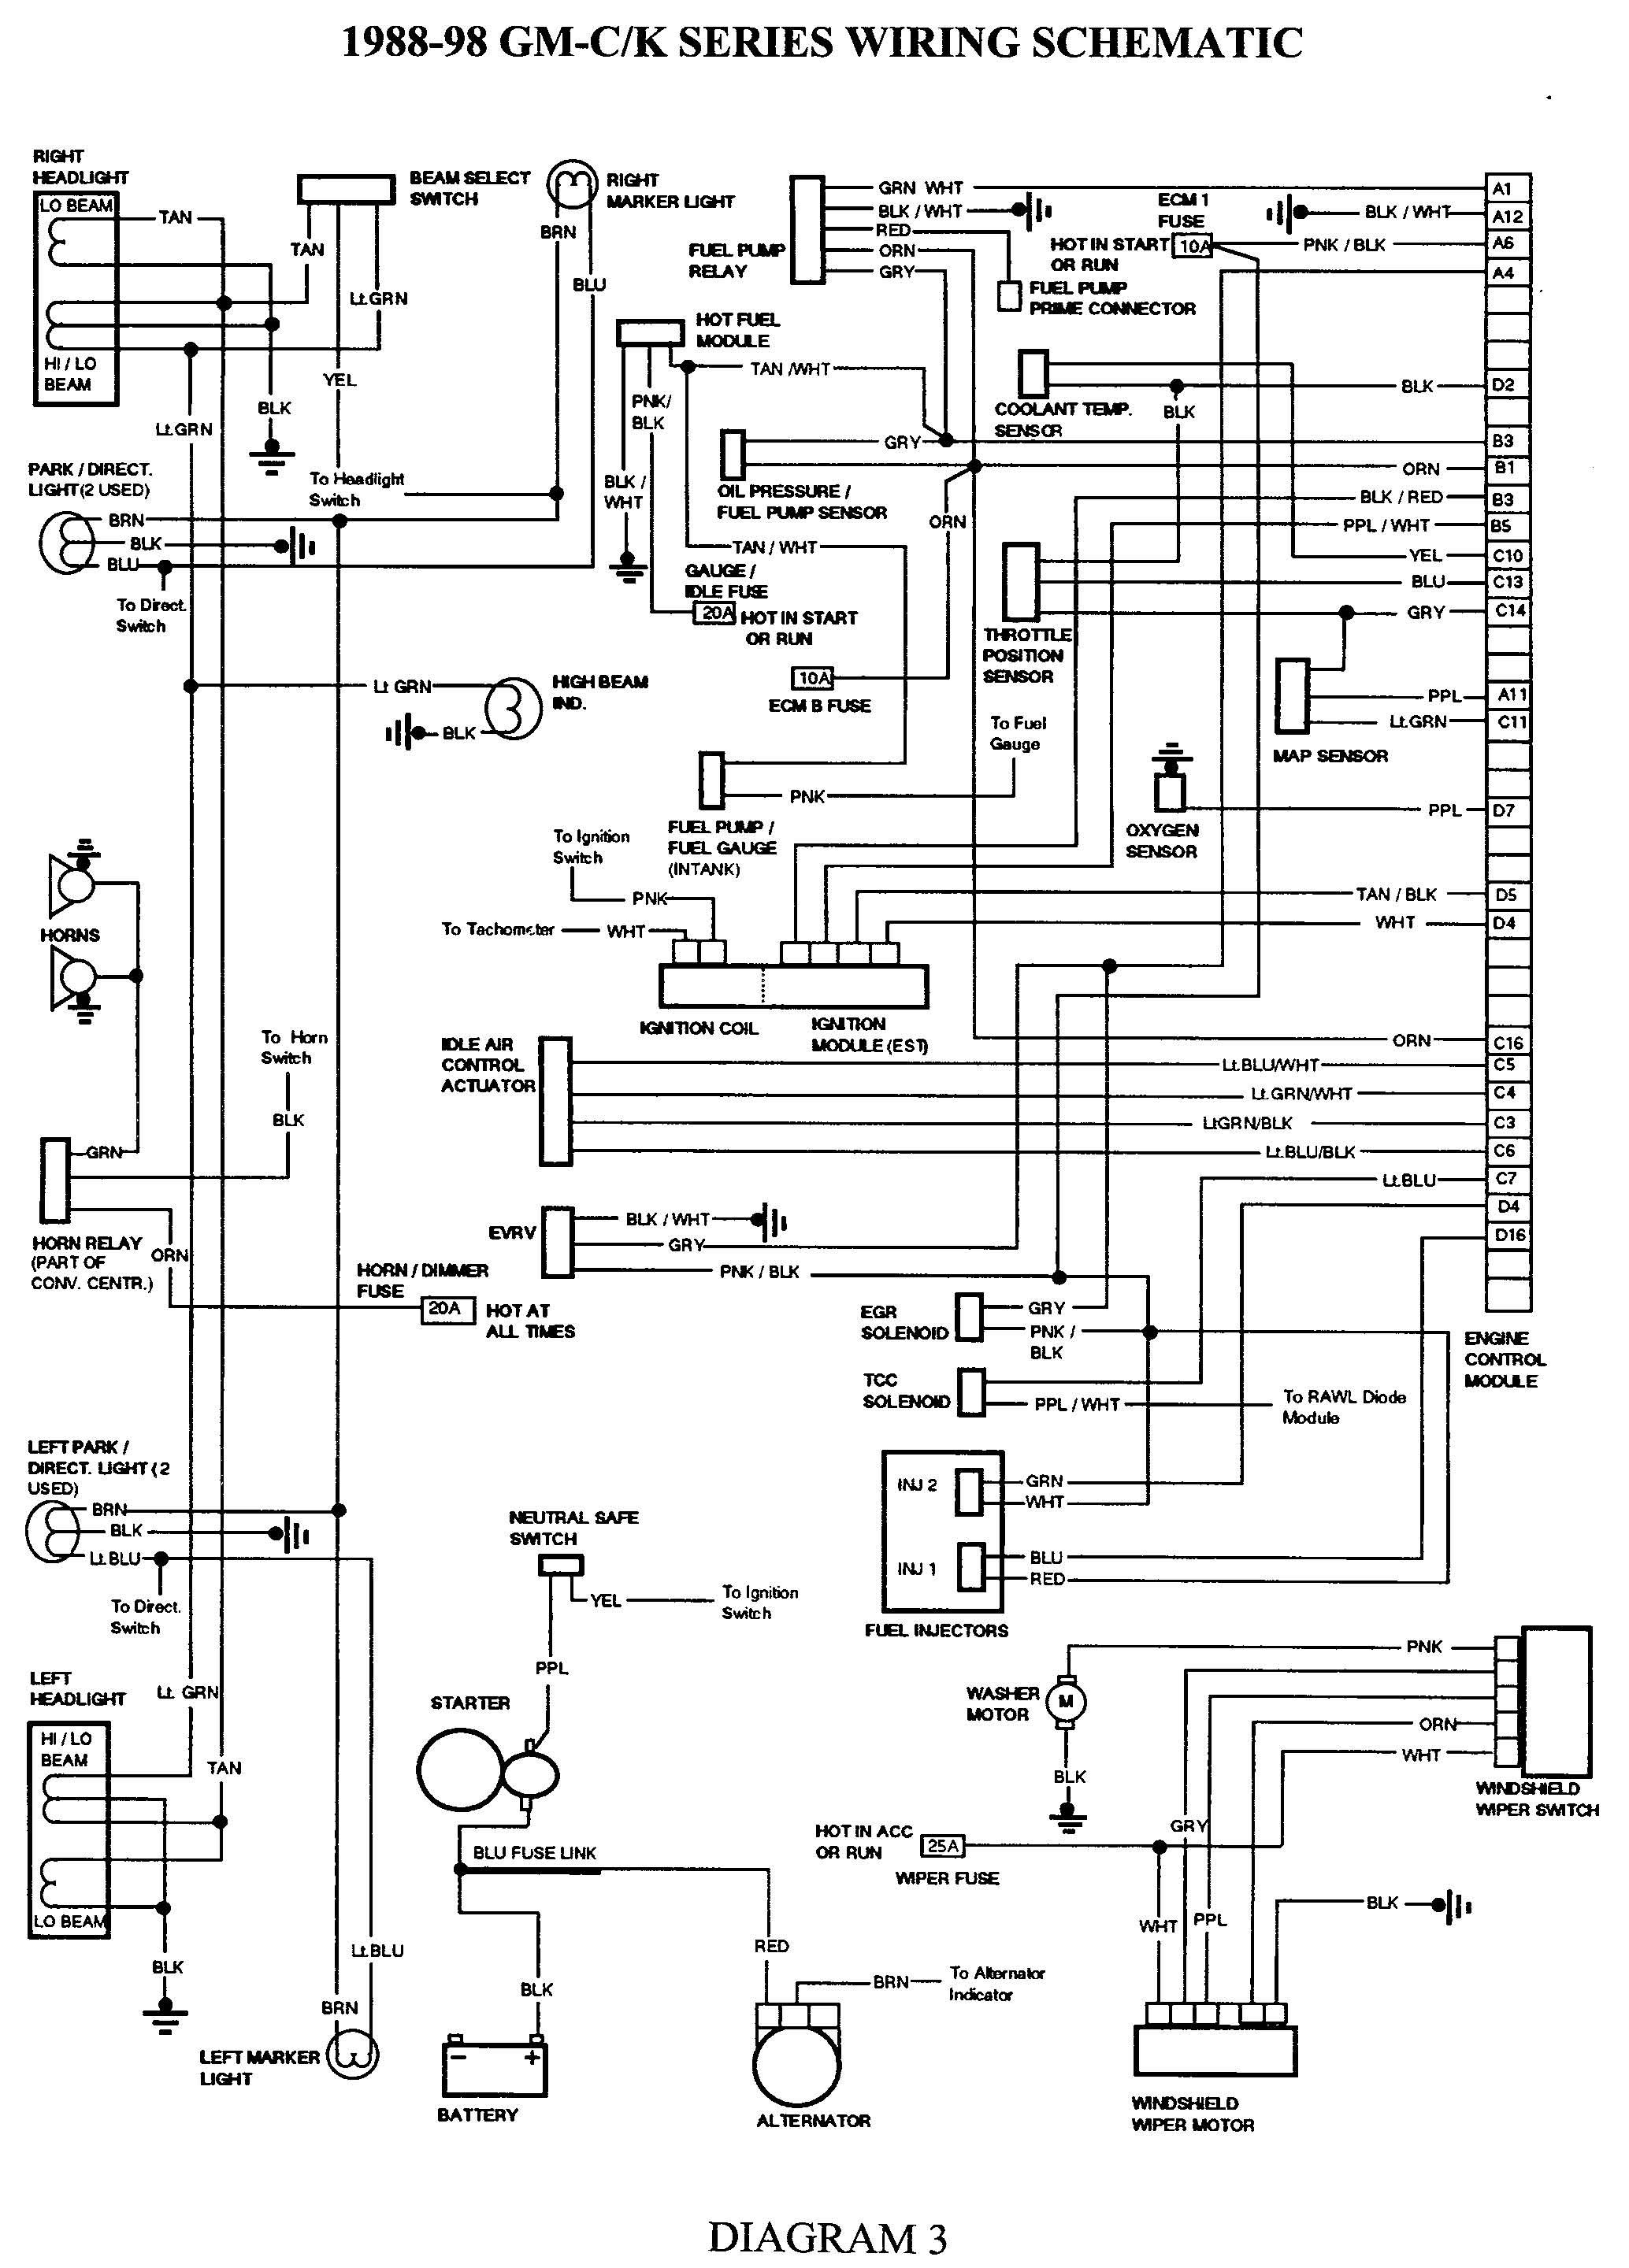 b2f2e5dbdc07dada83ef514f6d4ce3d4 gmc truck wiring diagrams on gm wiring harness diagram 88 98 kc gm truck wiring harness at reclaimingppi.co